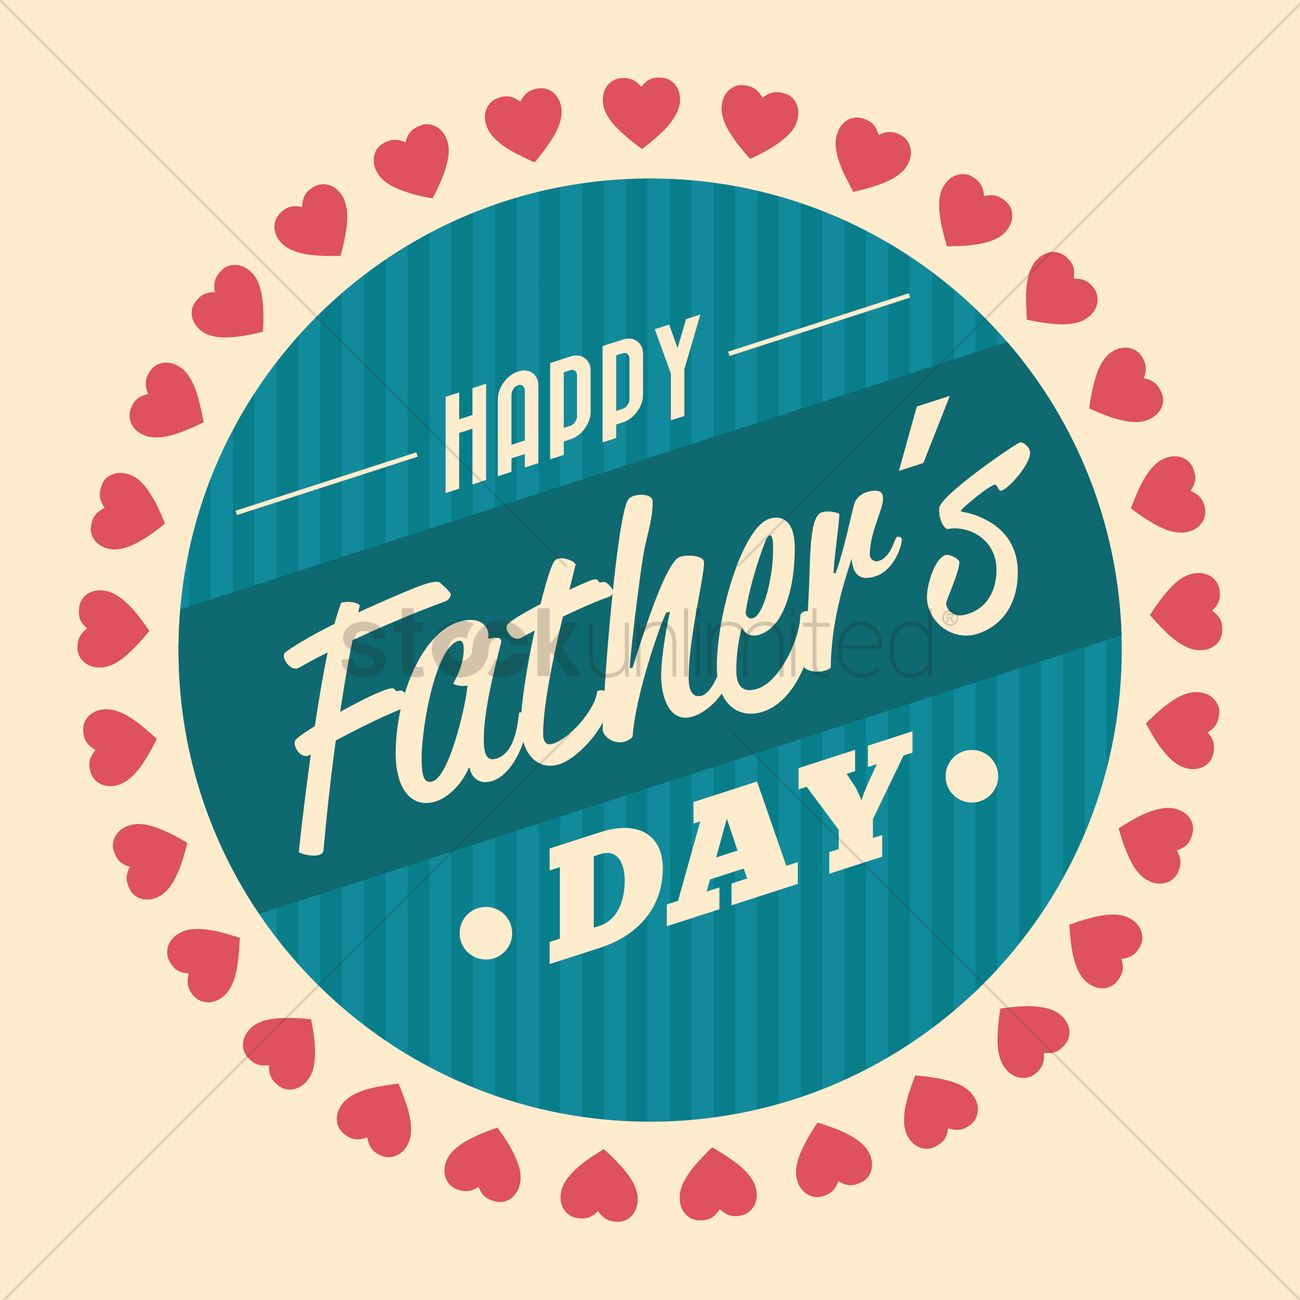 Happy fathers day wallpaper Vector Image   1561979 StockUnlimited 1300x1300